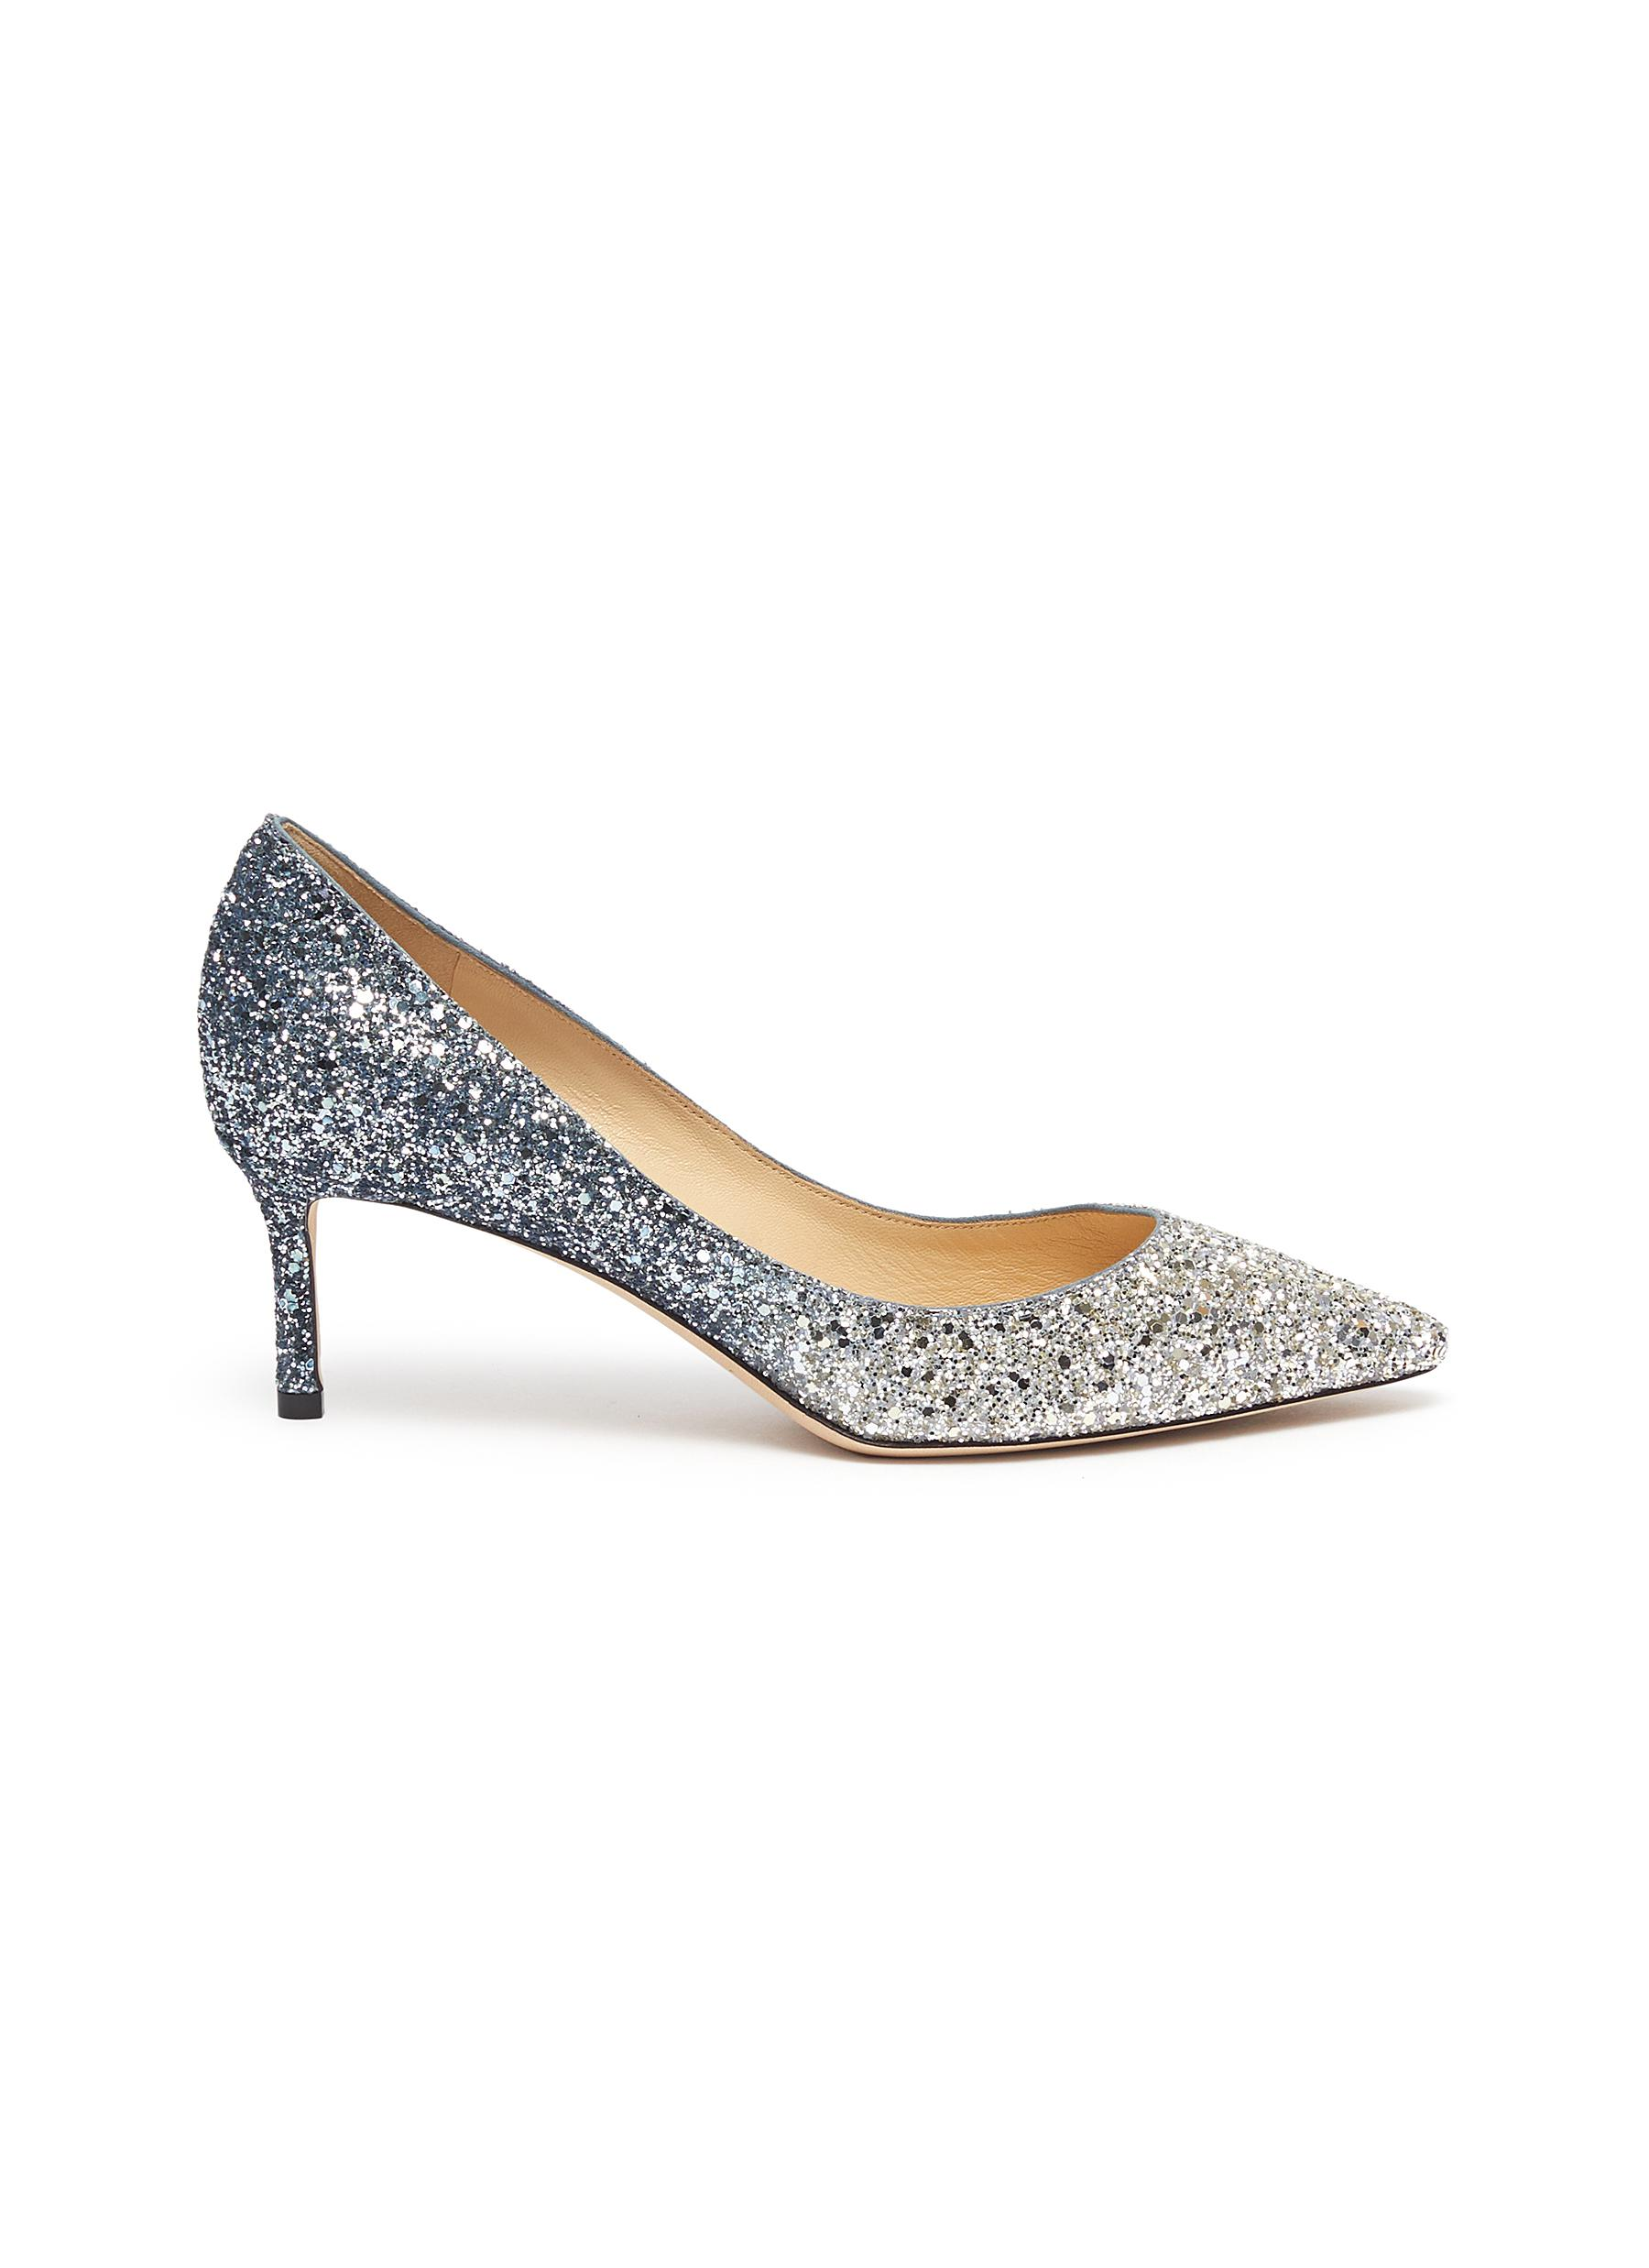 Romy 60 dégradé glitter pumps by Jimmy Choo